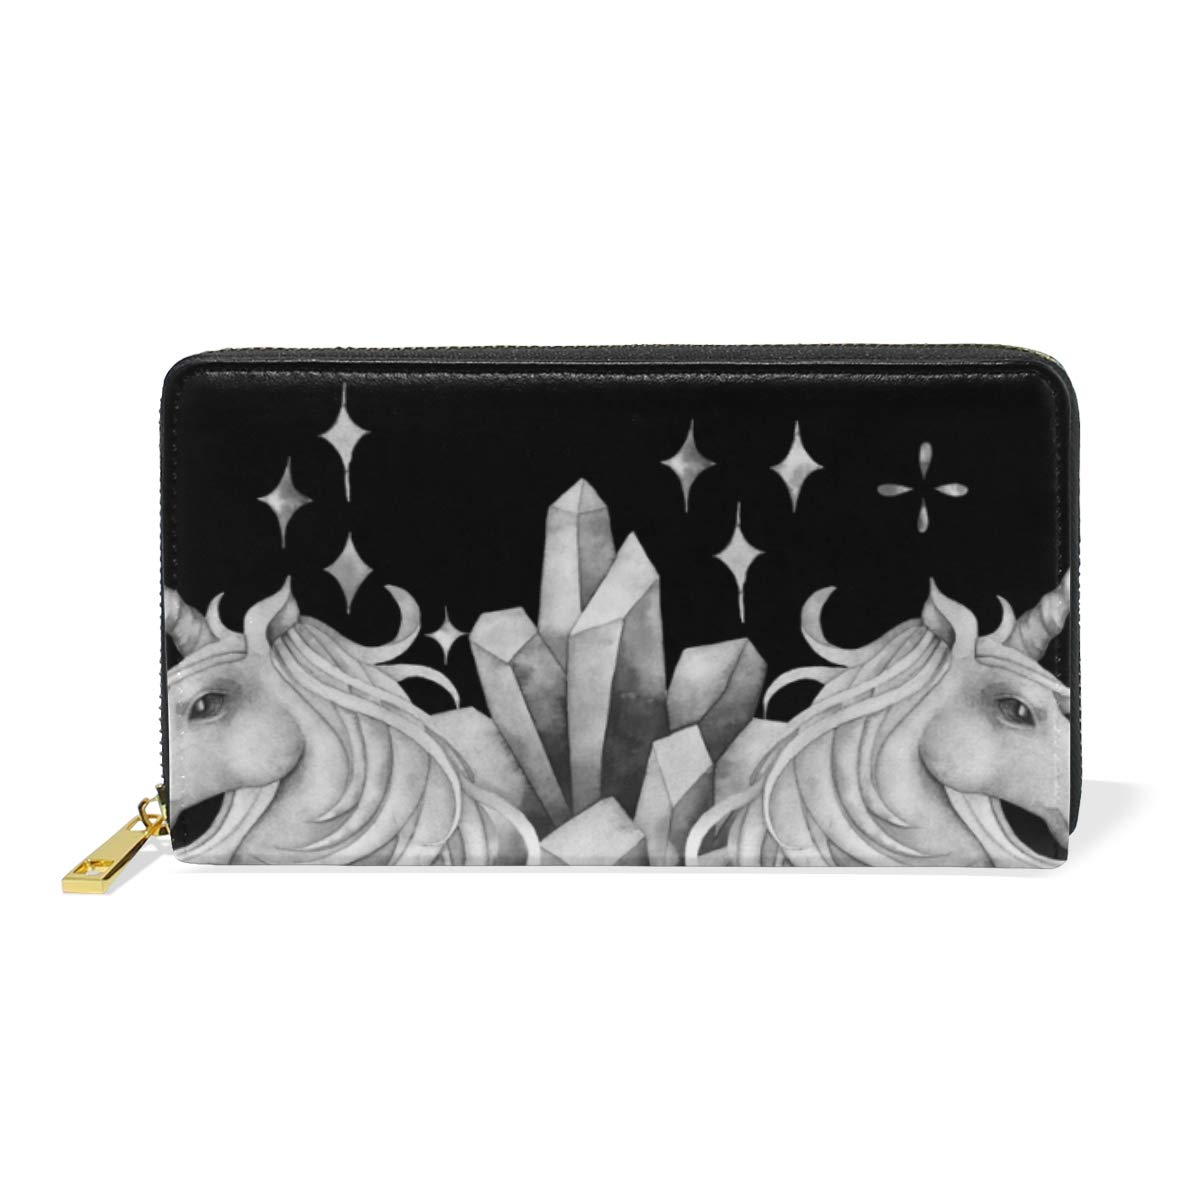 Unicorn Black Background Women Wallet Female Coin Purse Phone Clutch Pouch Girl Cash Bag Leather Card Change Holder Organizer Storage Key Hold Elegant Handbag For Party Birthday Gift